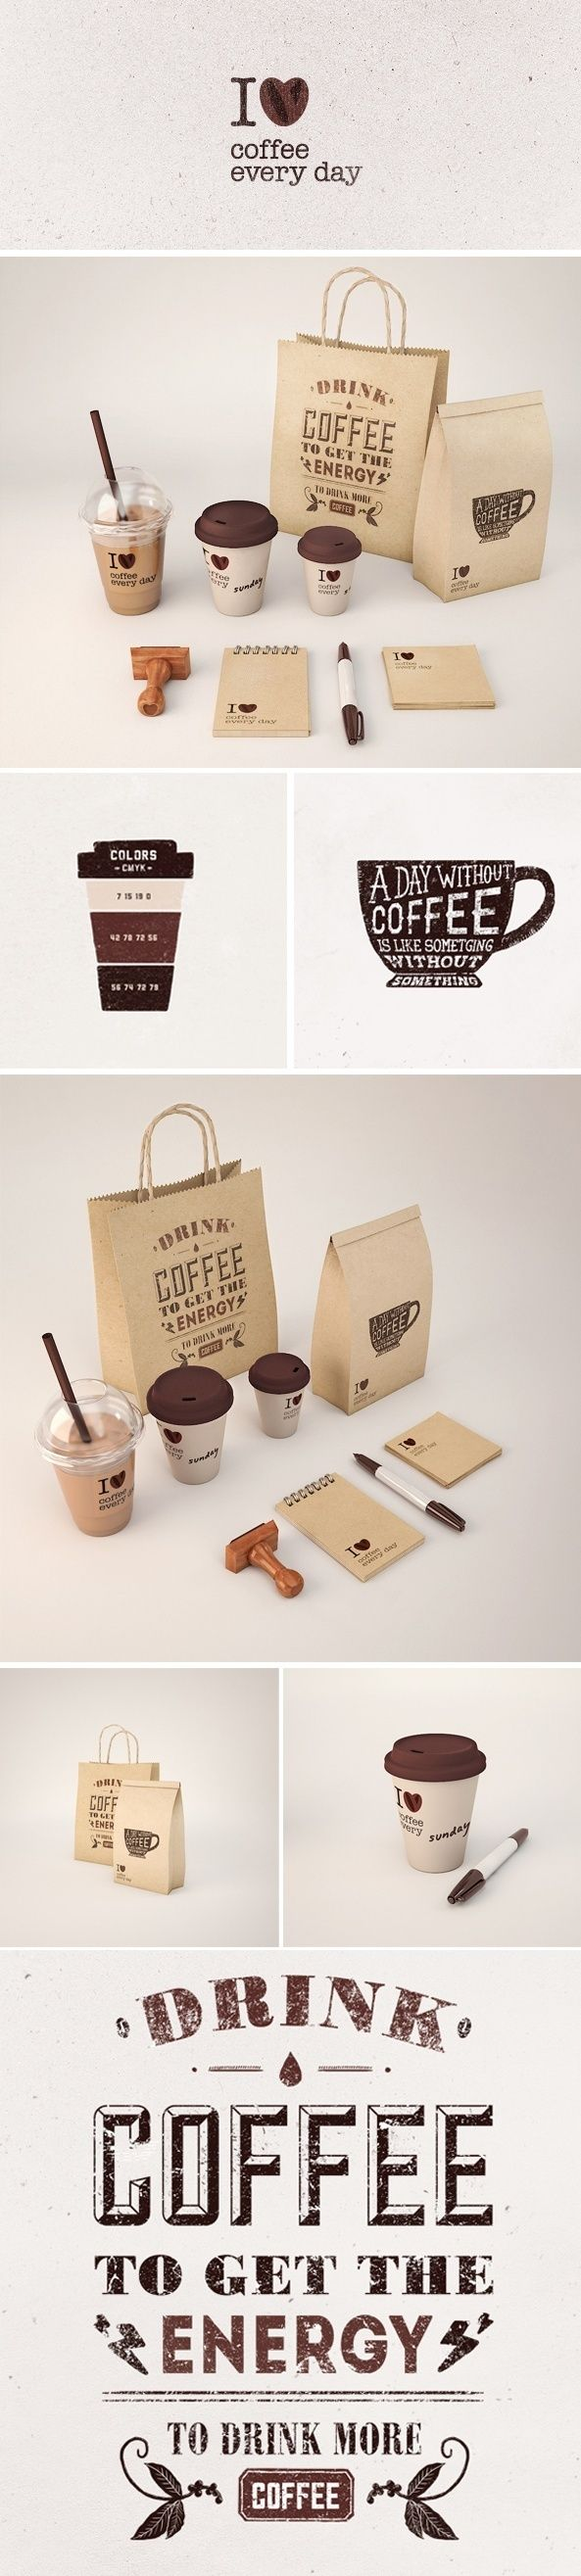 Let's meet for coffee #identity #packaging #branding